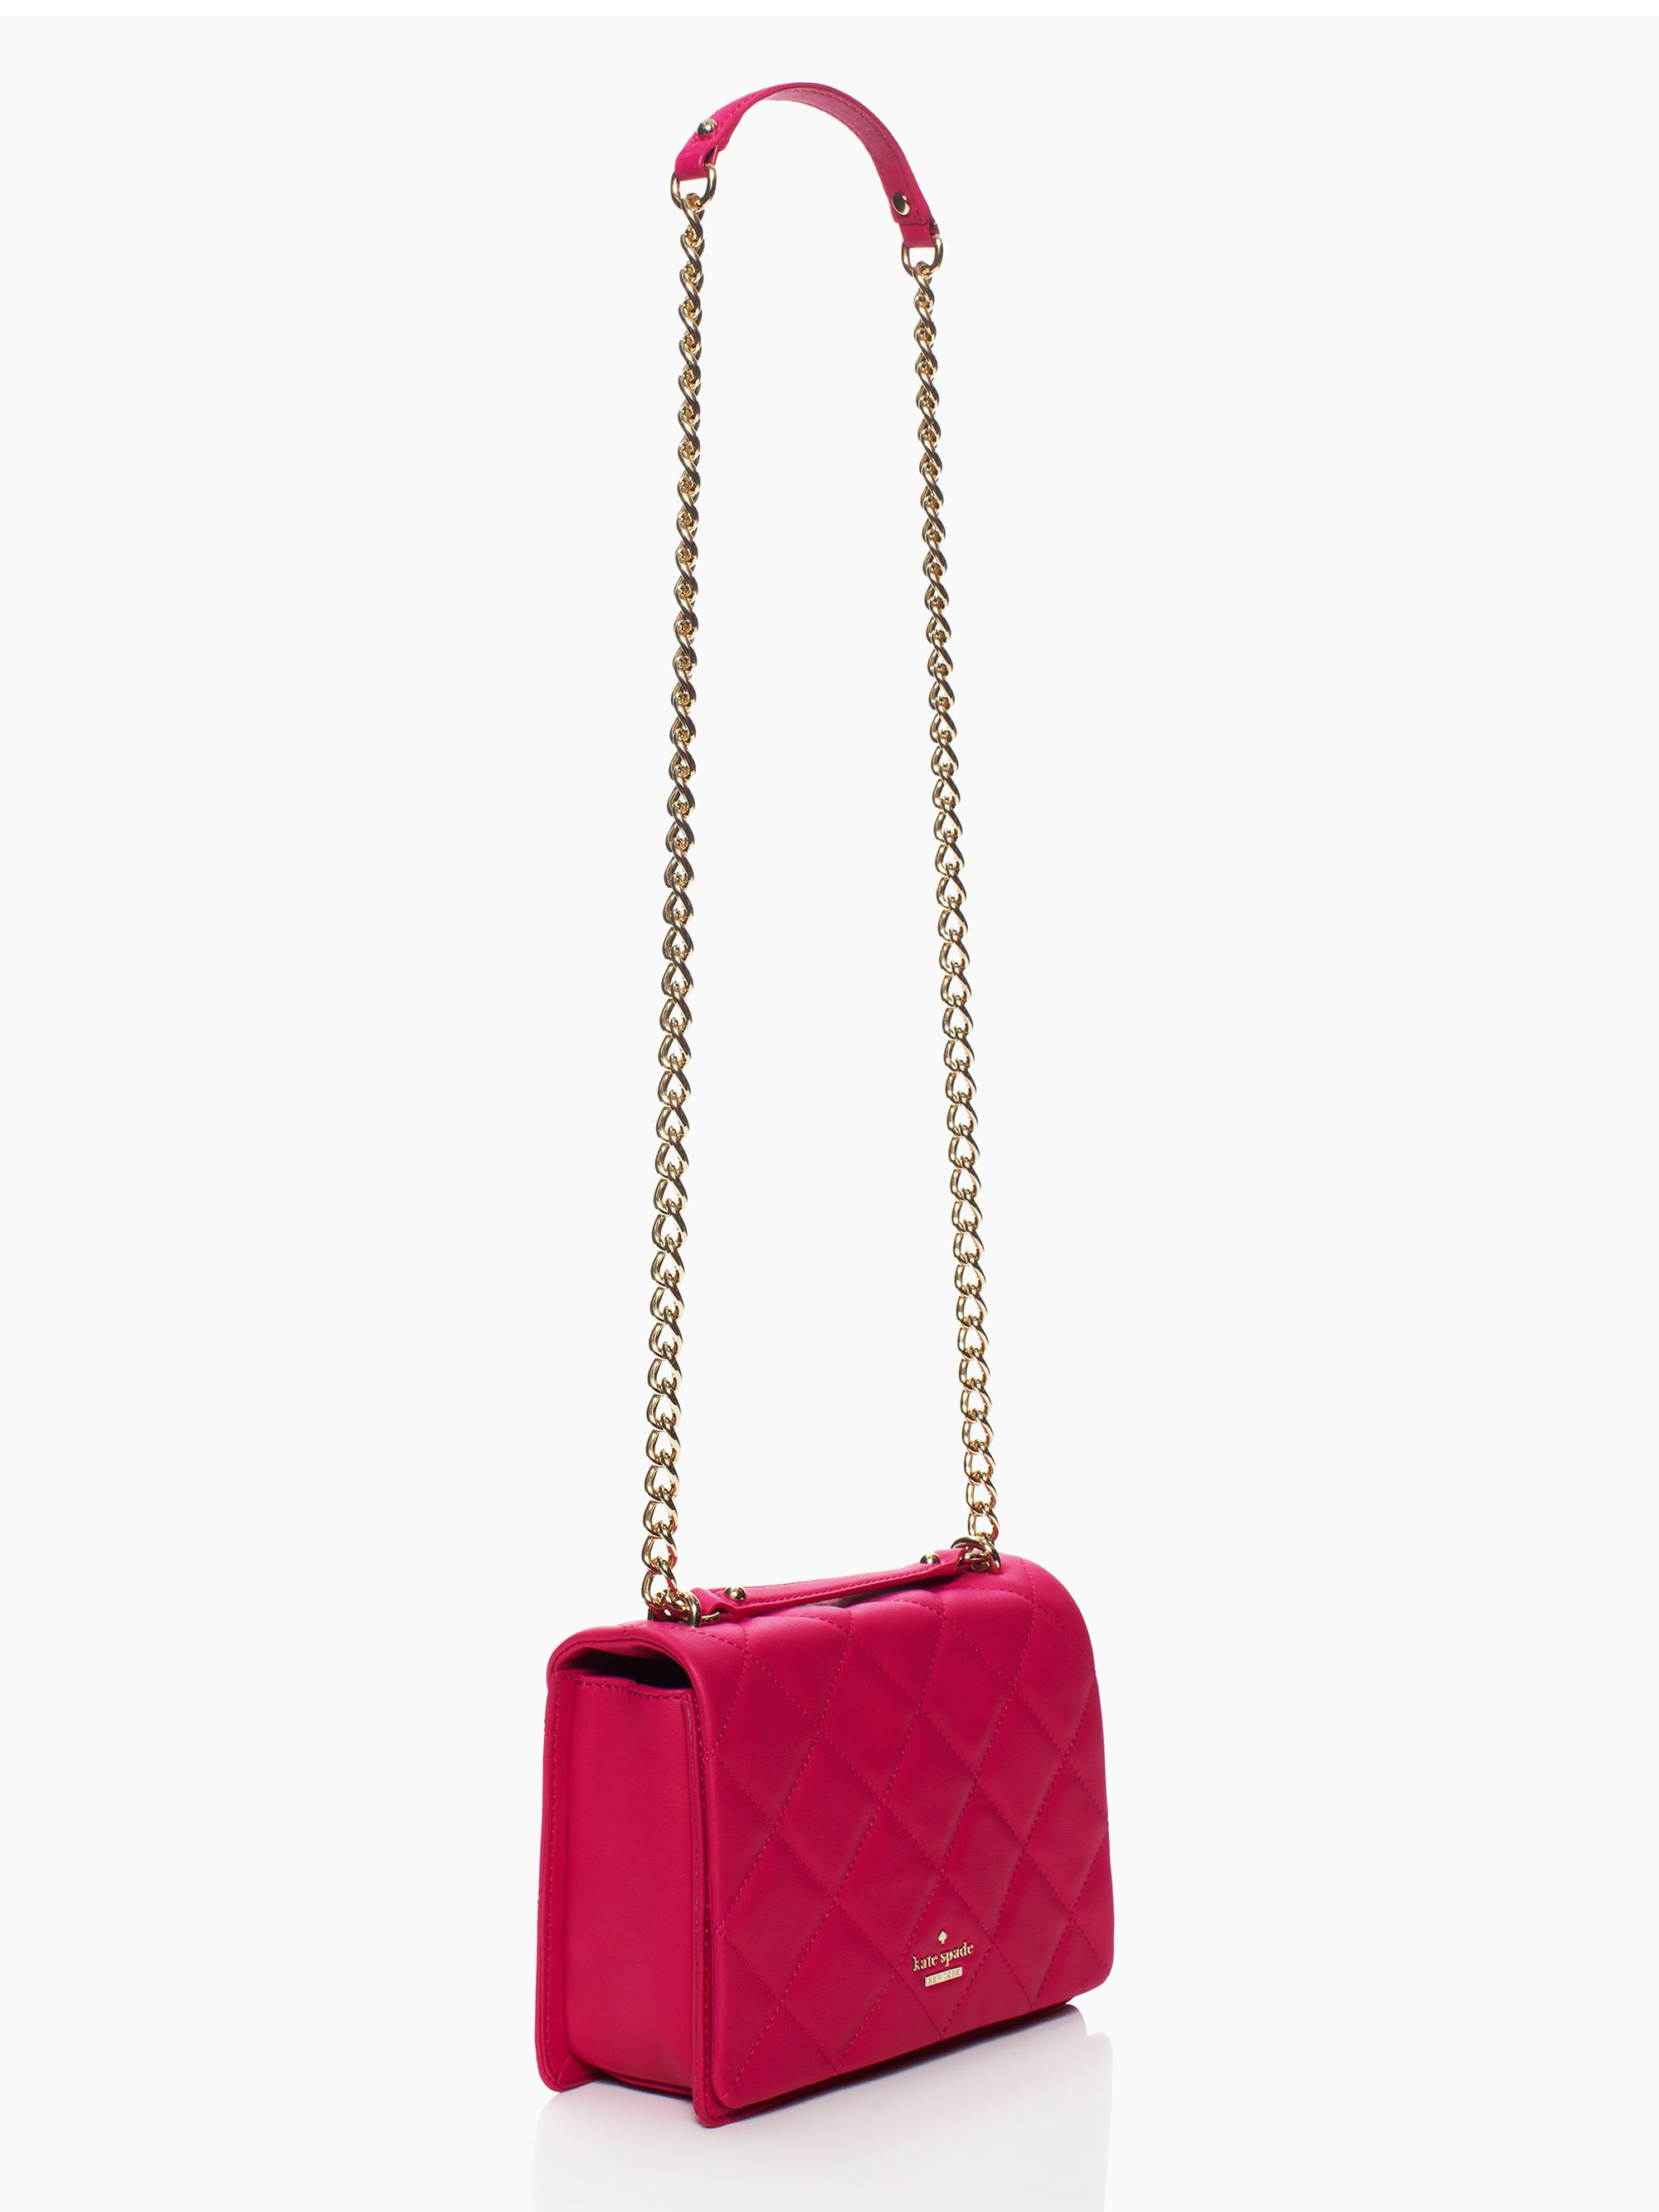 Kate Spade New York Emerson Place Vivenna In Purple Lyst